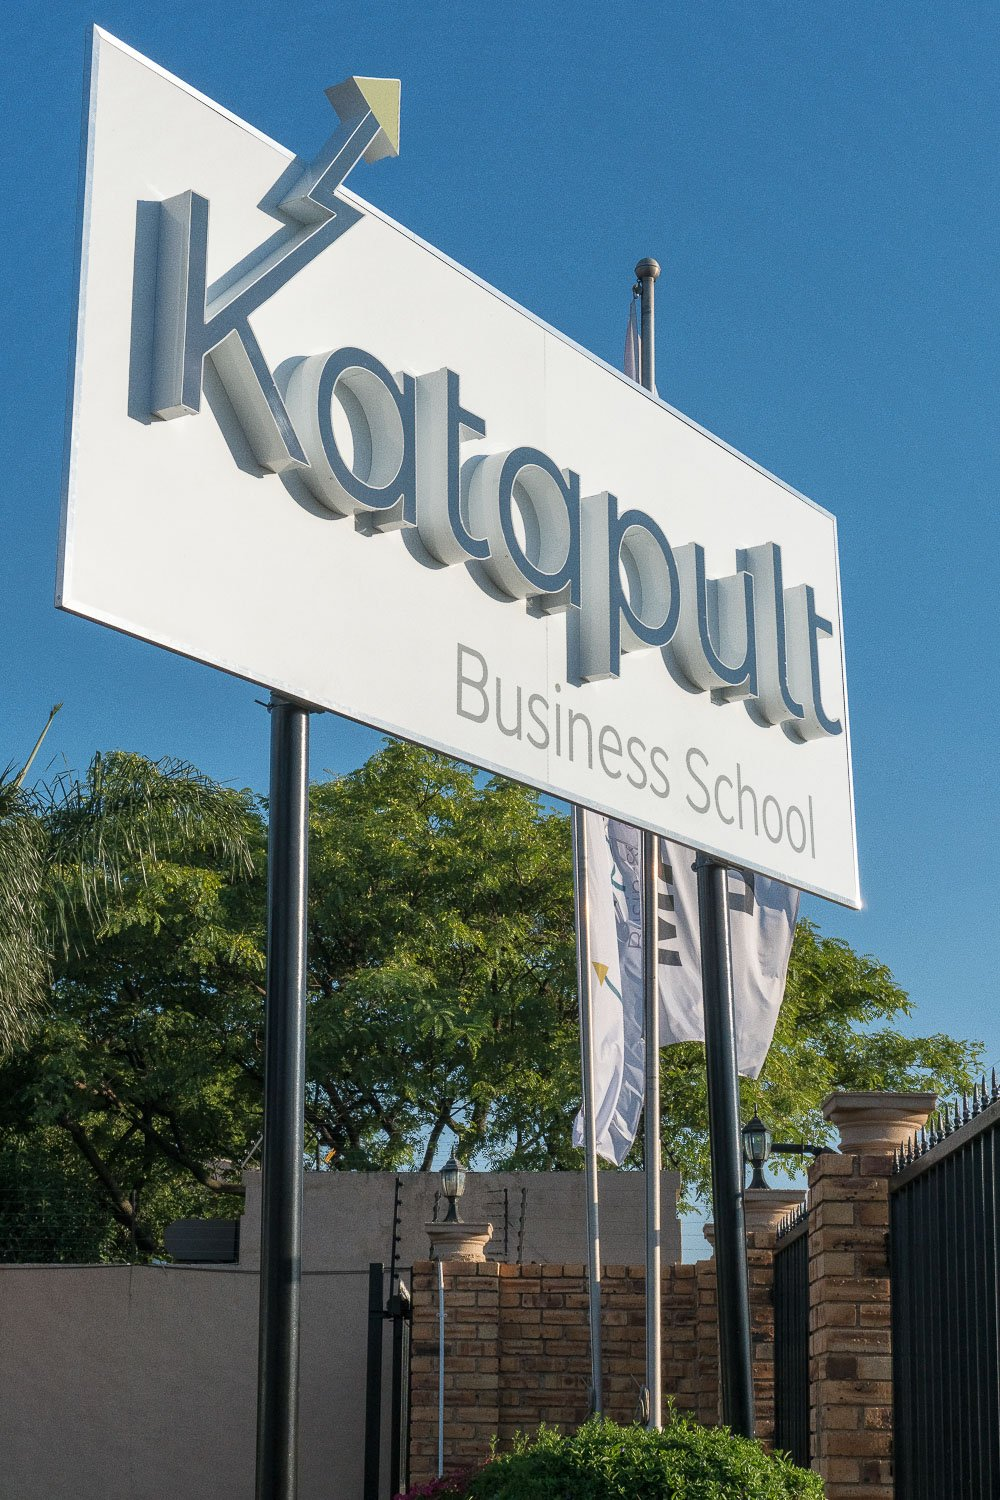 Katapult Business School - Exterior sign